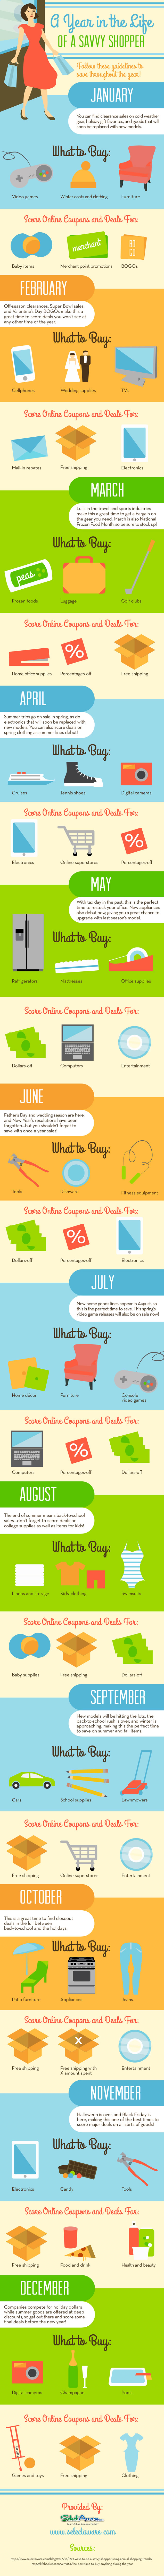 A Year in the Life of a Savvy Shopper - SelectAware